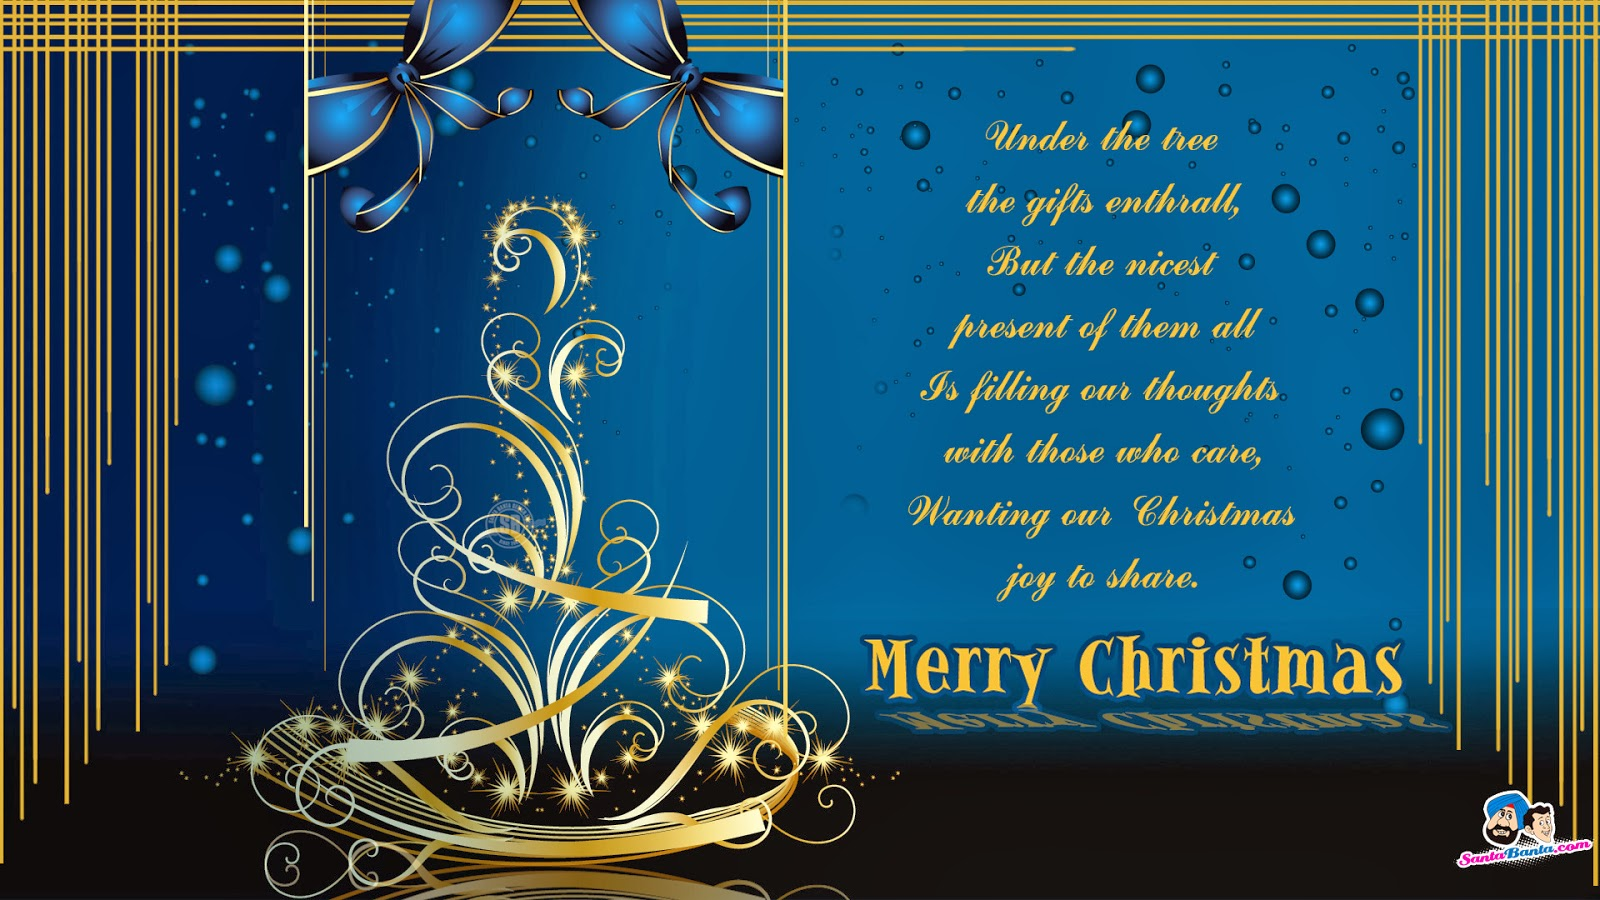 Christian Merry Christmas Clipart Merry Christmas Greetings